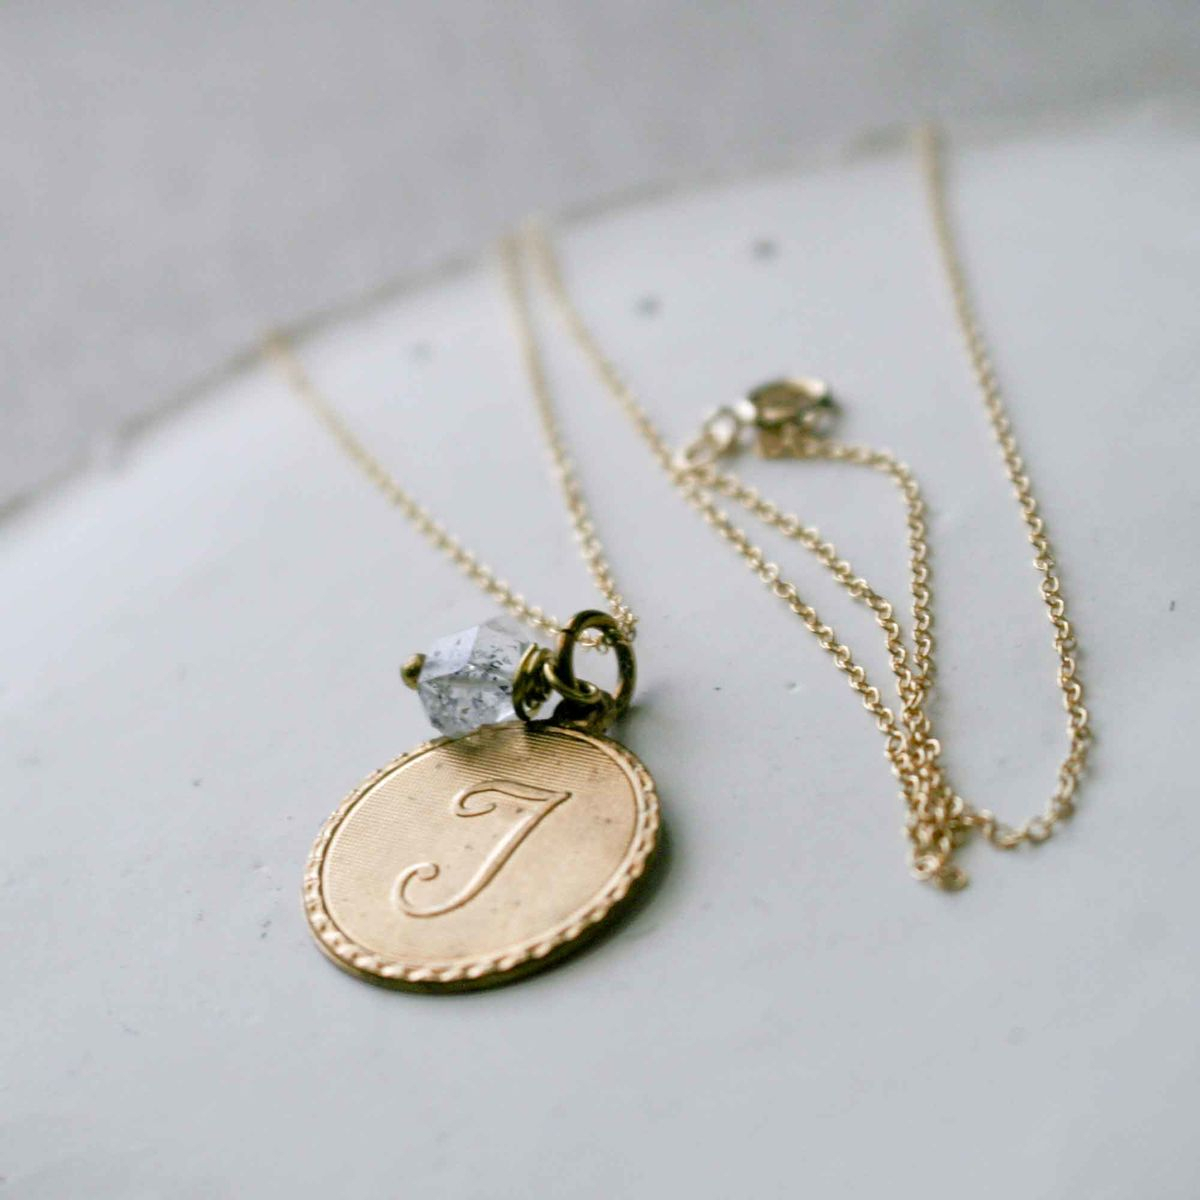 Uppercase Cursive Initial Monogram Letter Round Disc Charm Necklace For Most Popular Letter Q Alphabet Locket Element Necklaces (View 17 of 26)